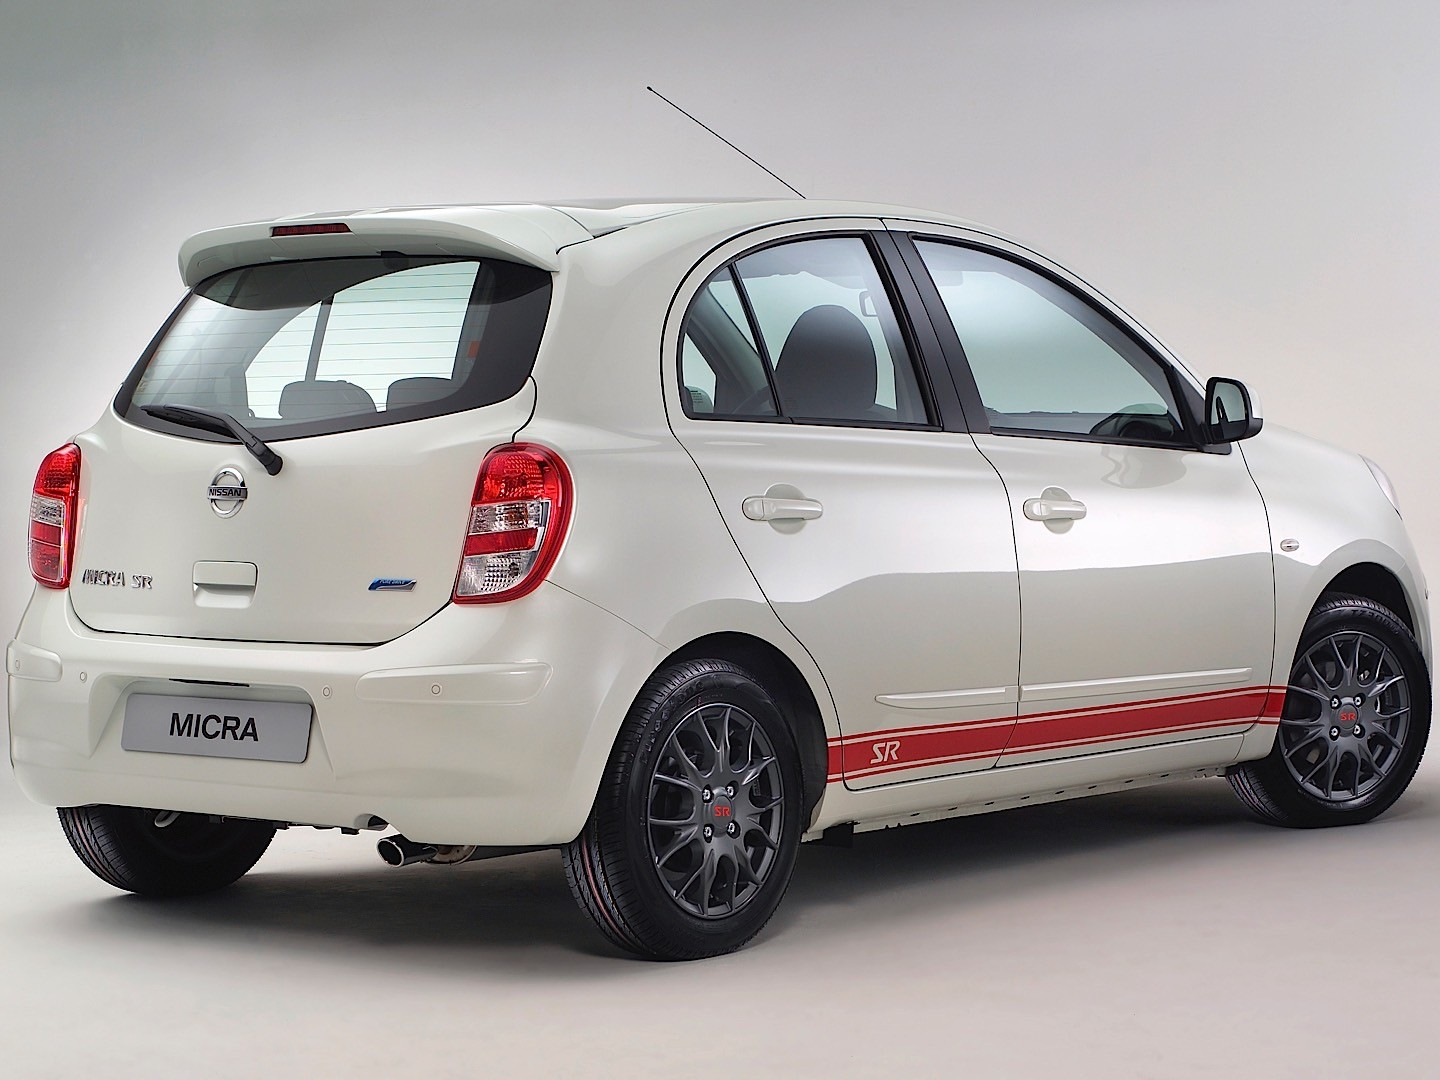 NISSAN Micra 5 Doors specs & photos - 2010, 2011, 2012 ...